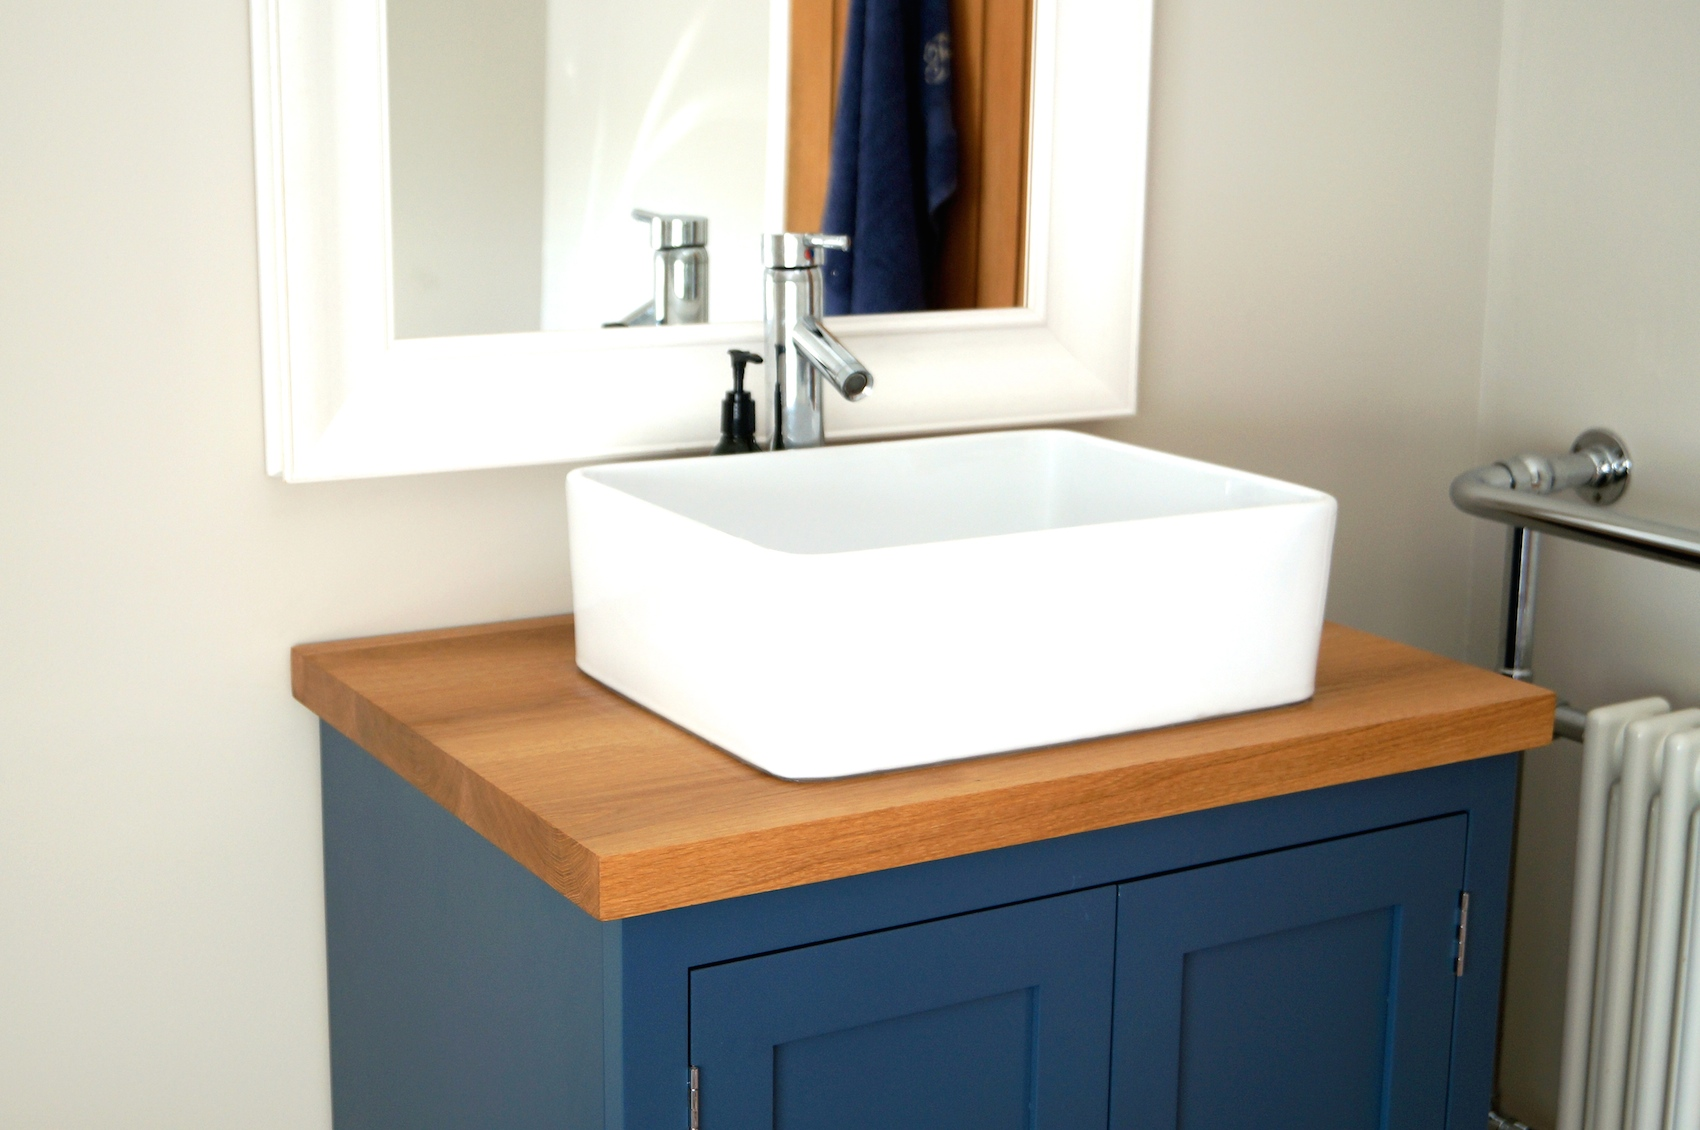 Awesome Bespoke Bathroom Sink Cabinets Constructed From Pure Oak Download Free Architecture Designs Embacsunscenecom